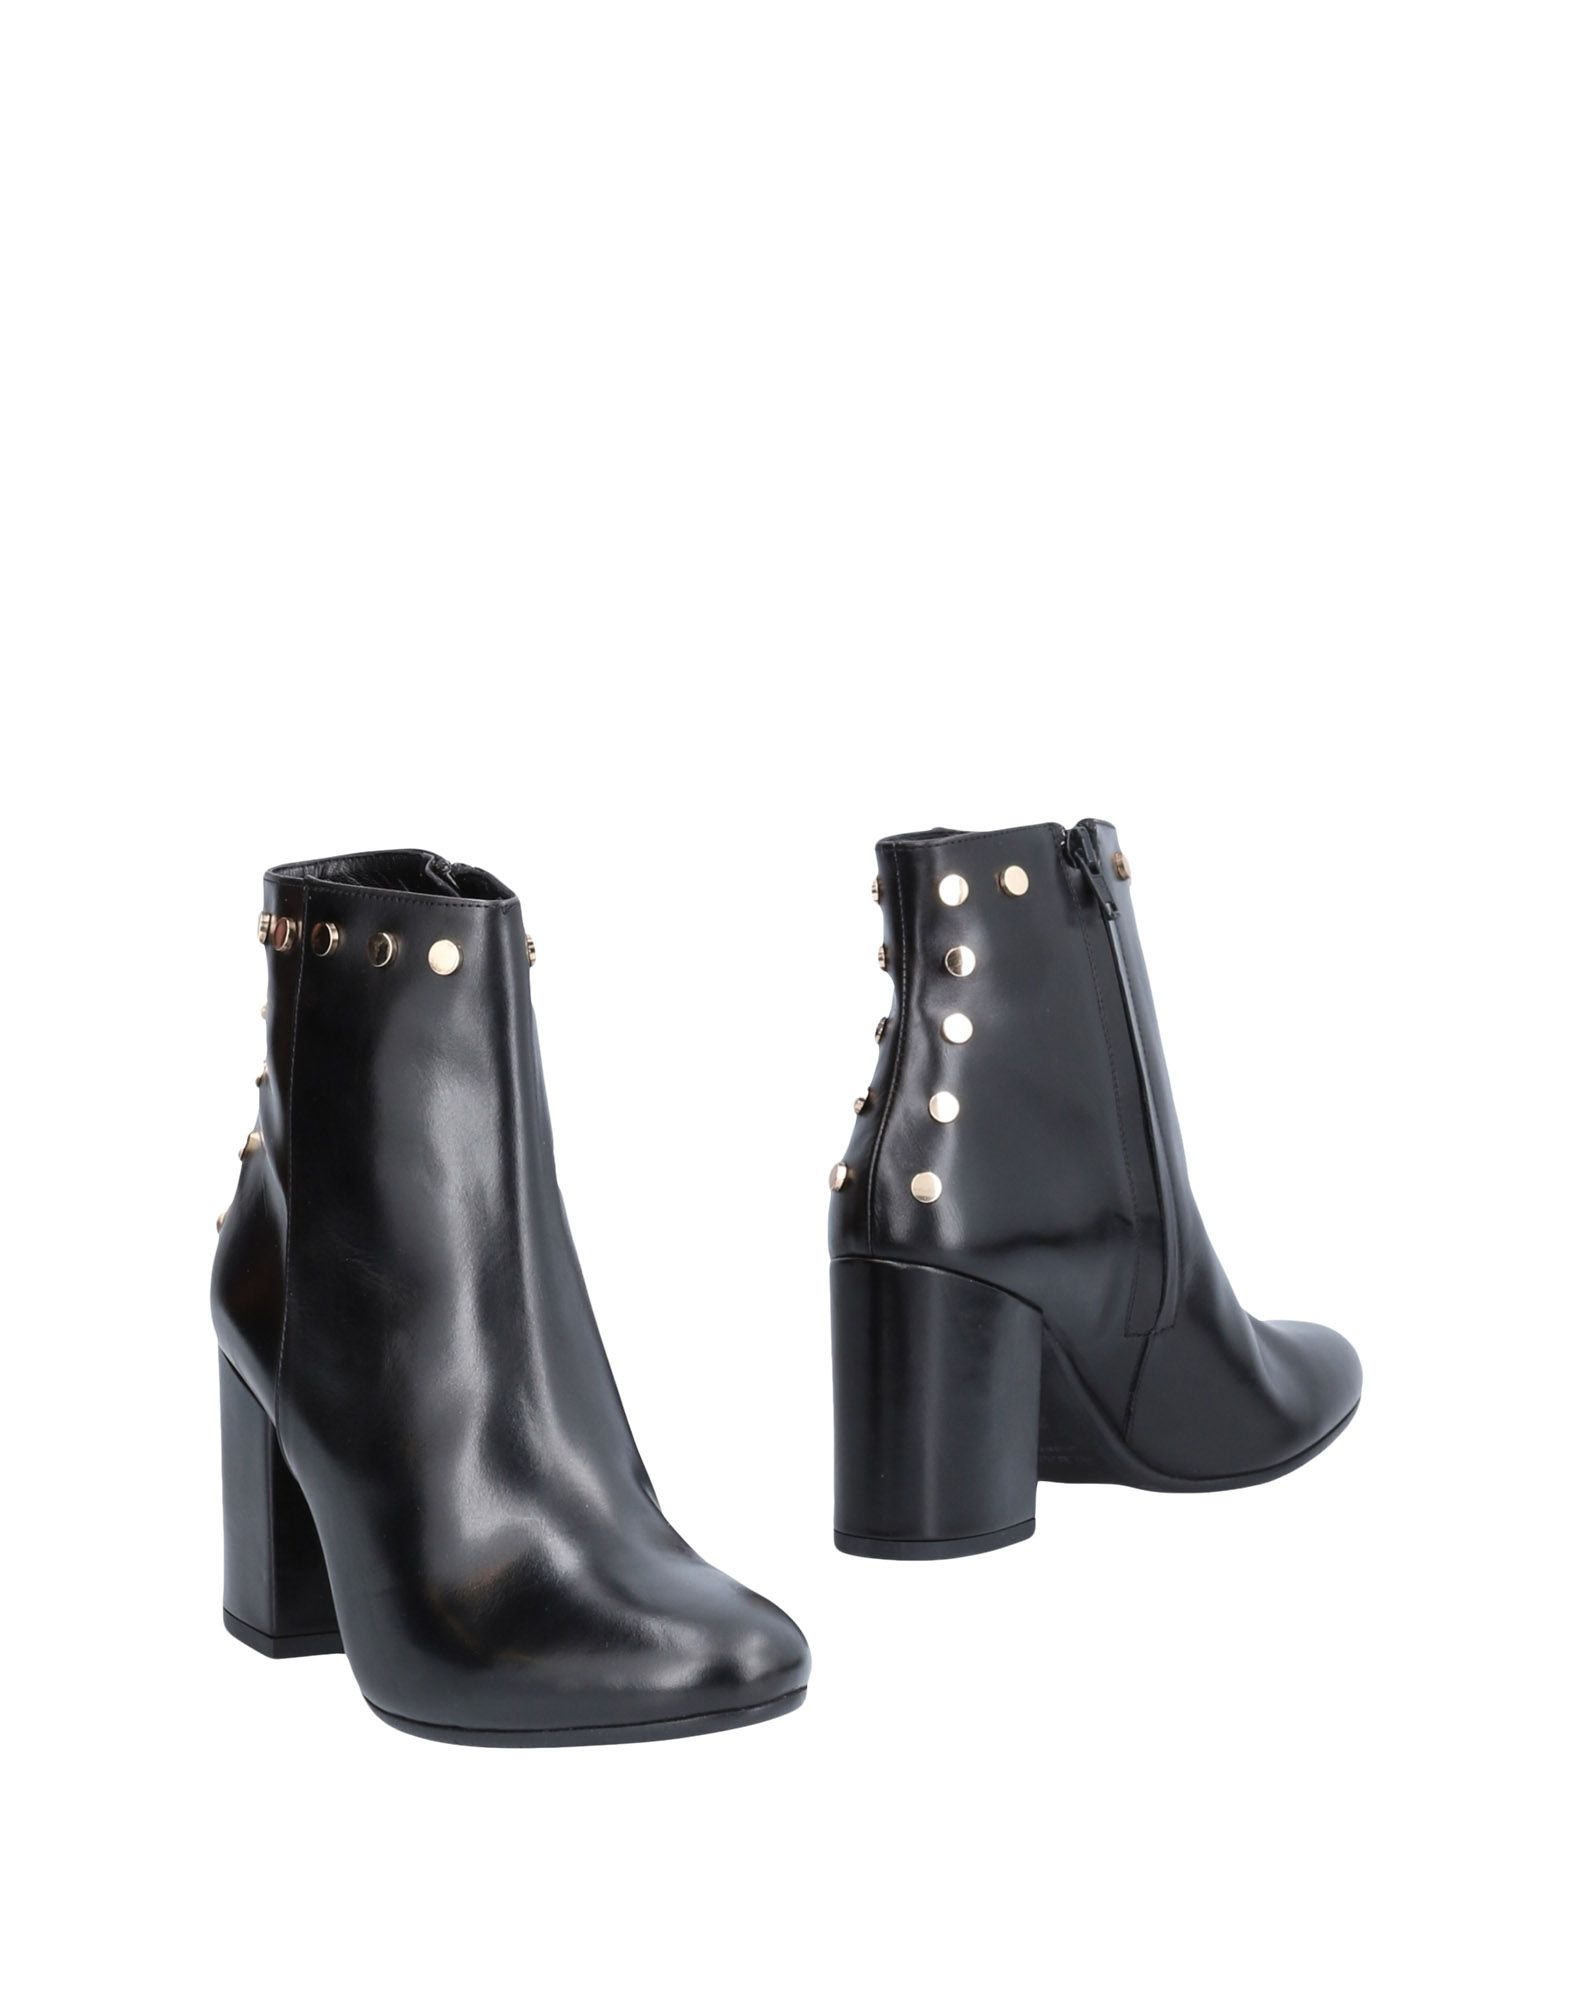 Albano Albano Albano Ankle Boot - Women Albano Ankle Boots online on  Canada - 11488514CD 3eec4e